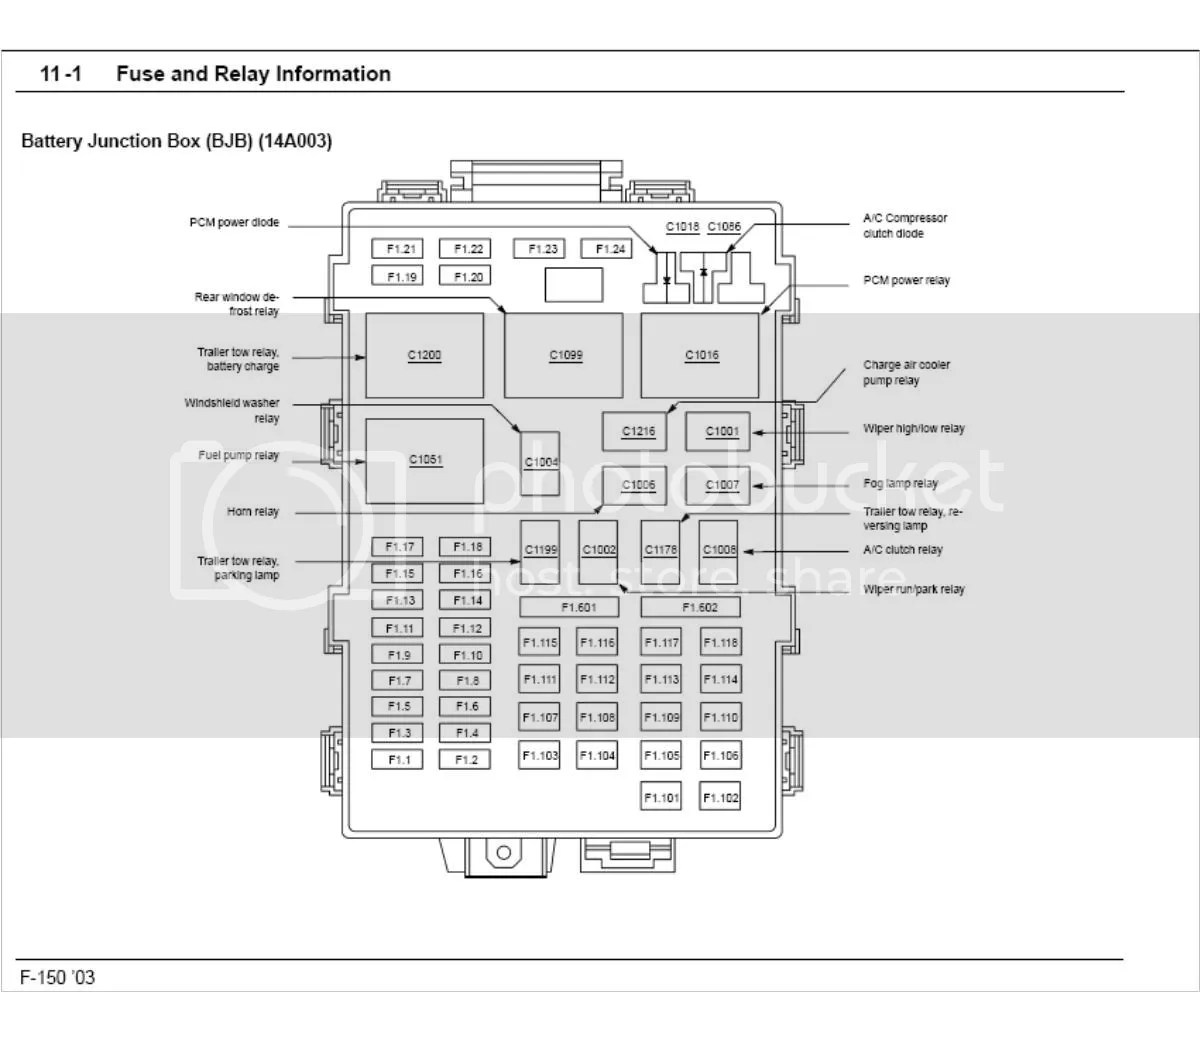 hight resolution of ford f 150 fuse diagram electrical wiring diagramsfuse diagram for 2003 f150 4 6l ford f150